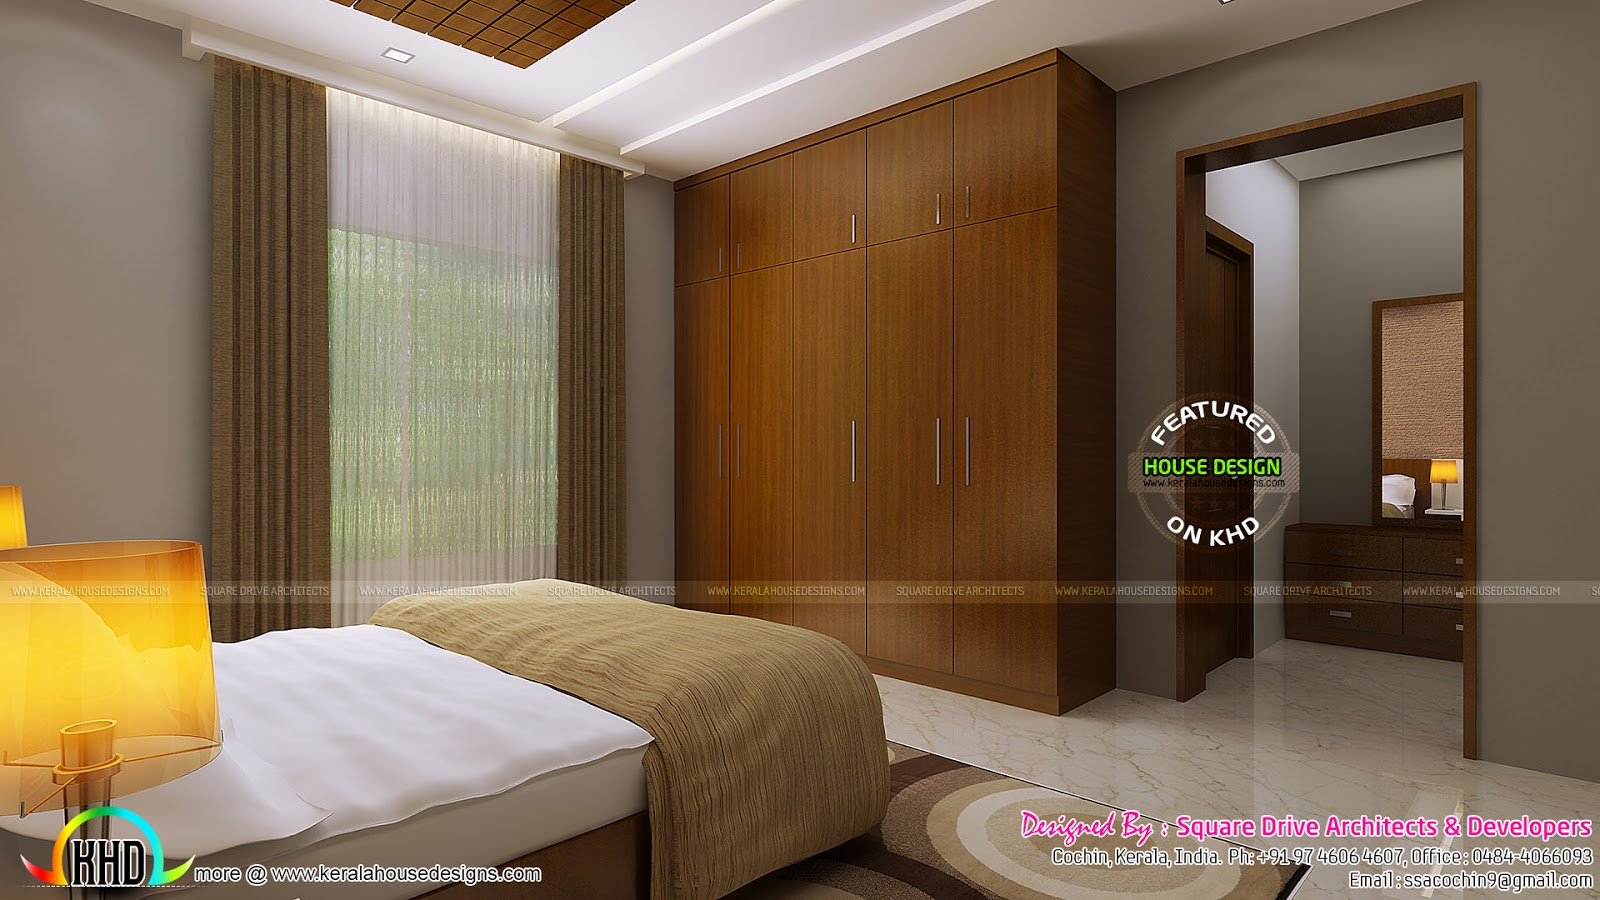 Master and guest bedroom interiors kerala home design and floor plans - Guest house interior design ...